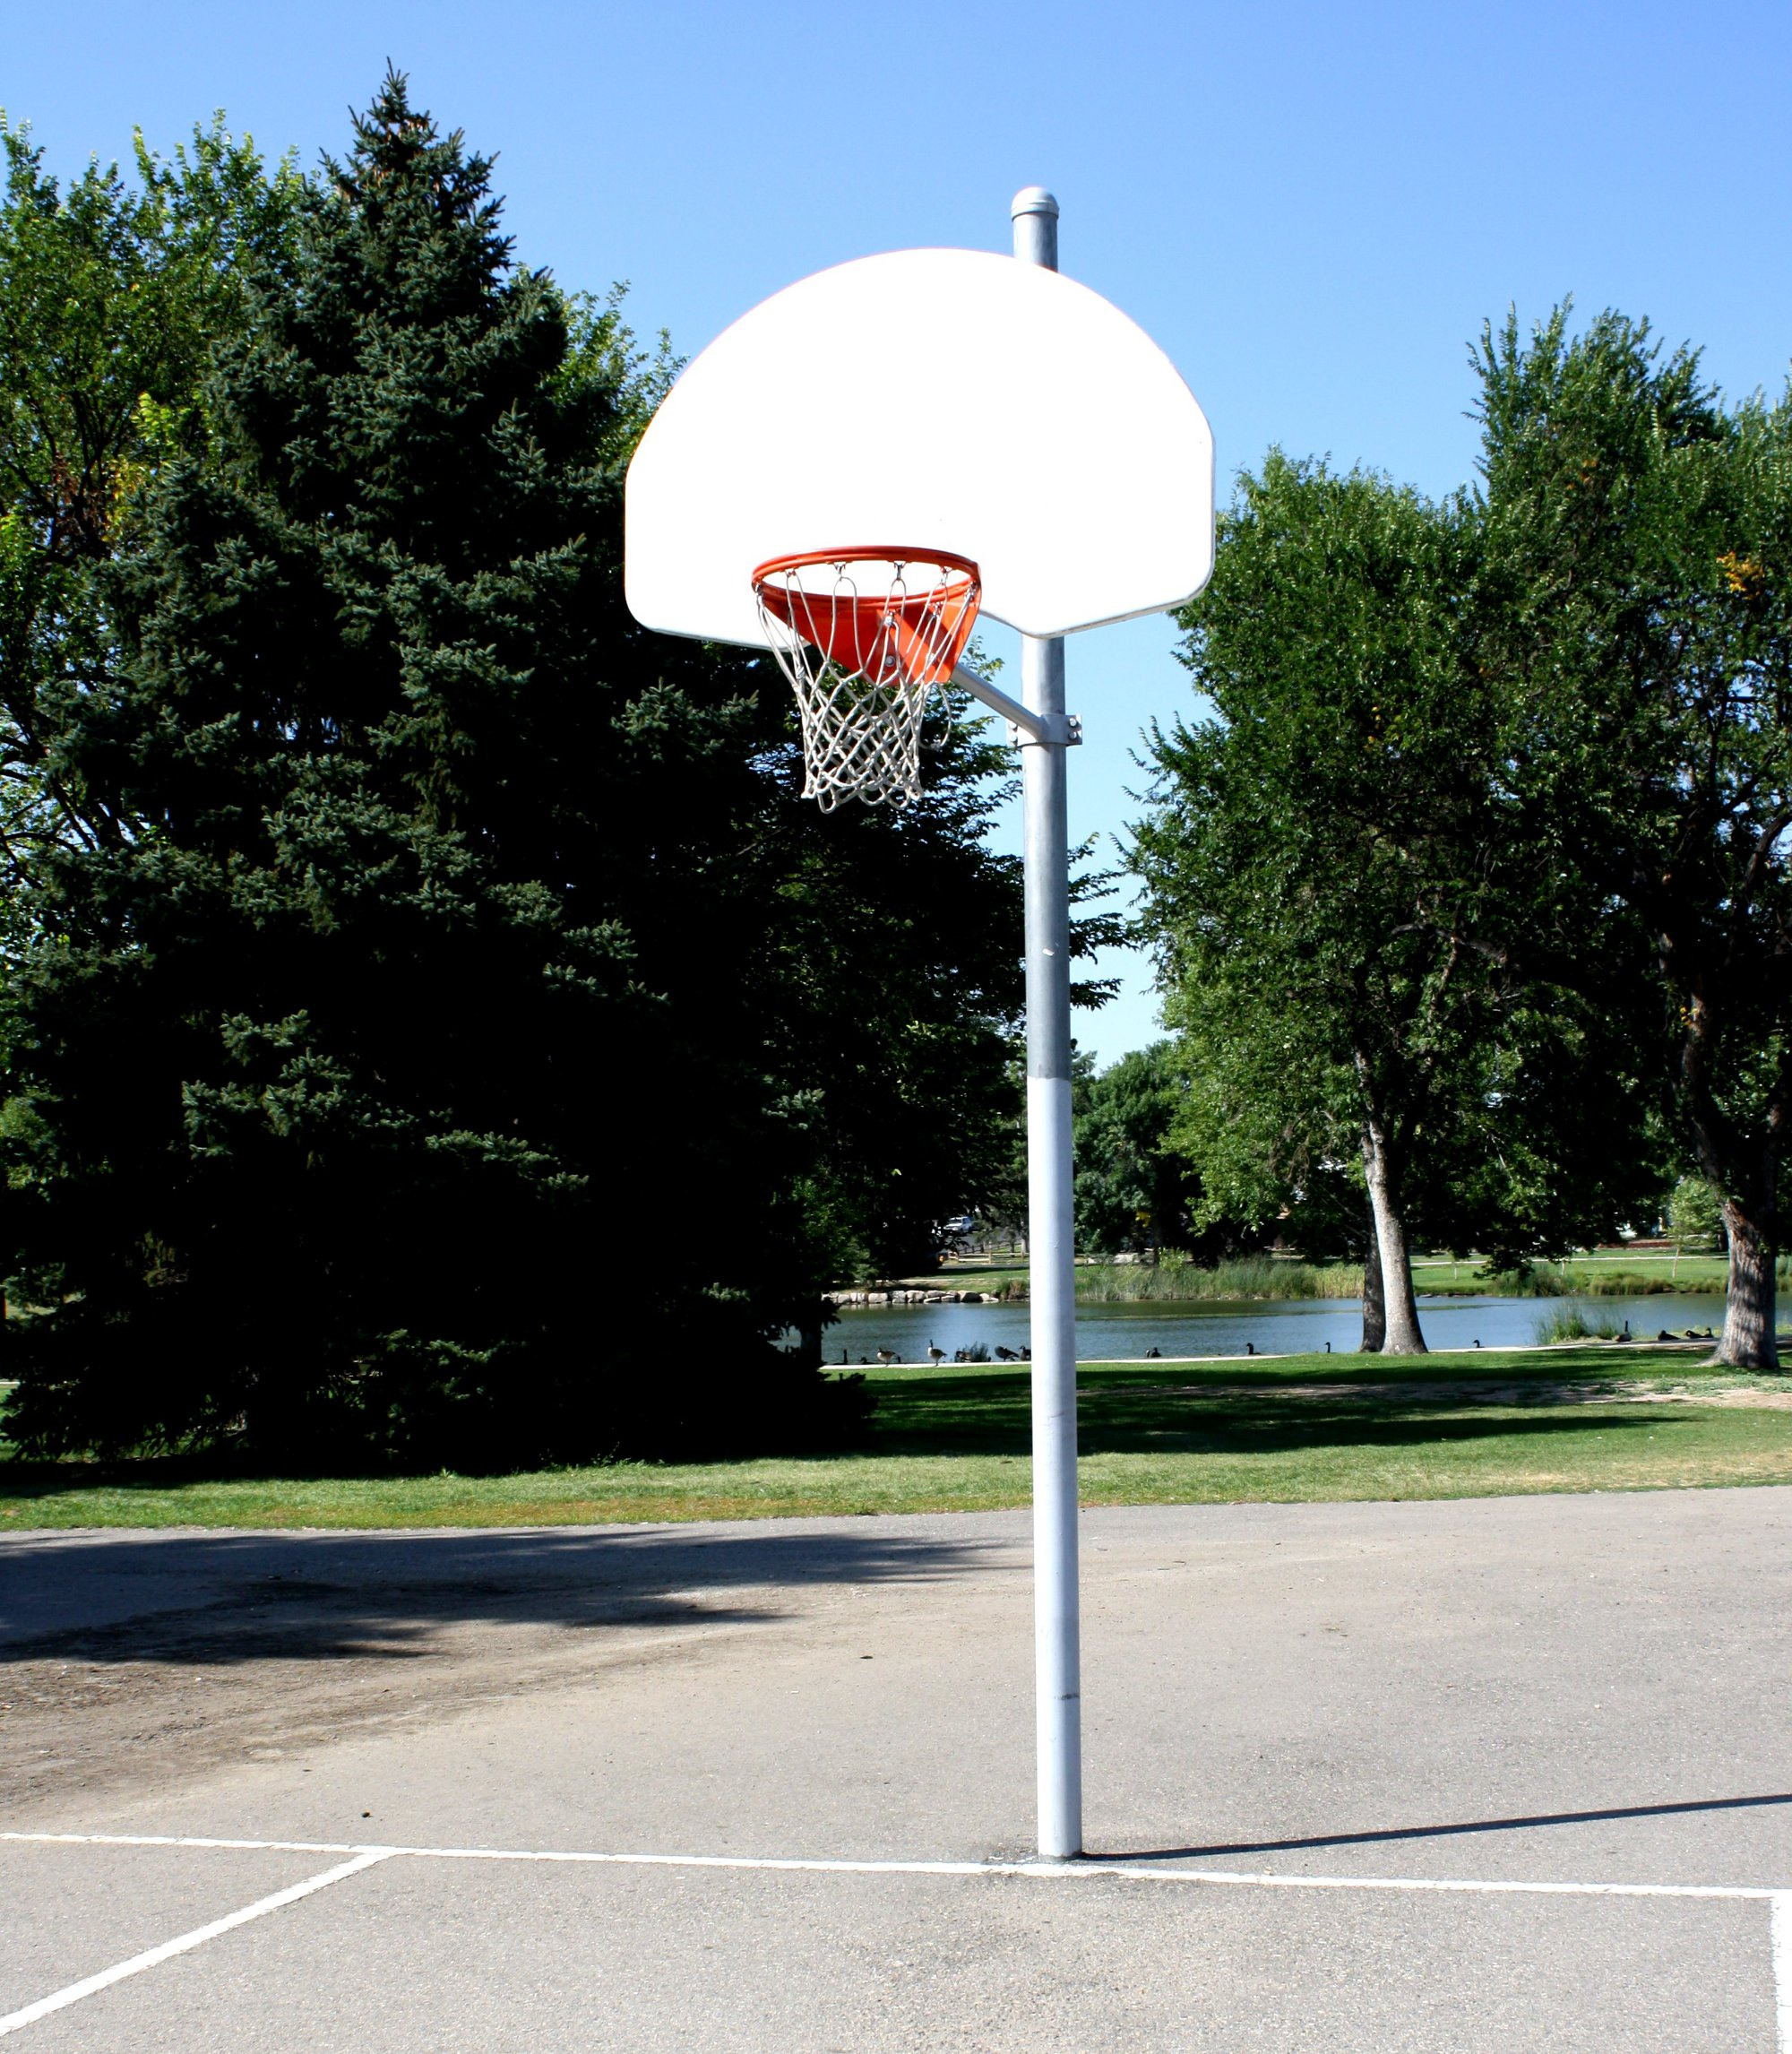 Basketball Hoop at the Park Picture | Free Photograph | Photos ...